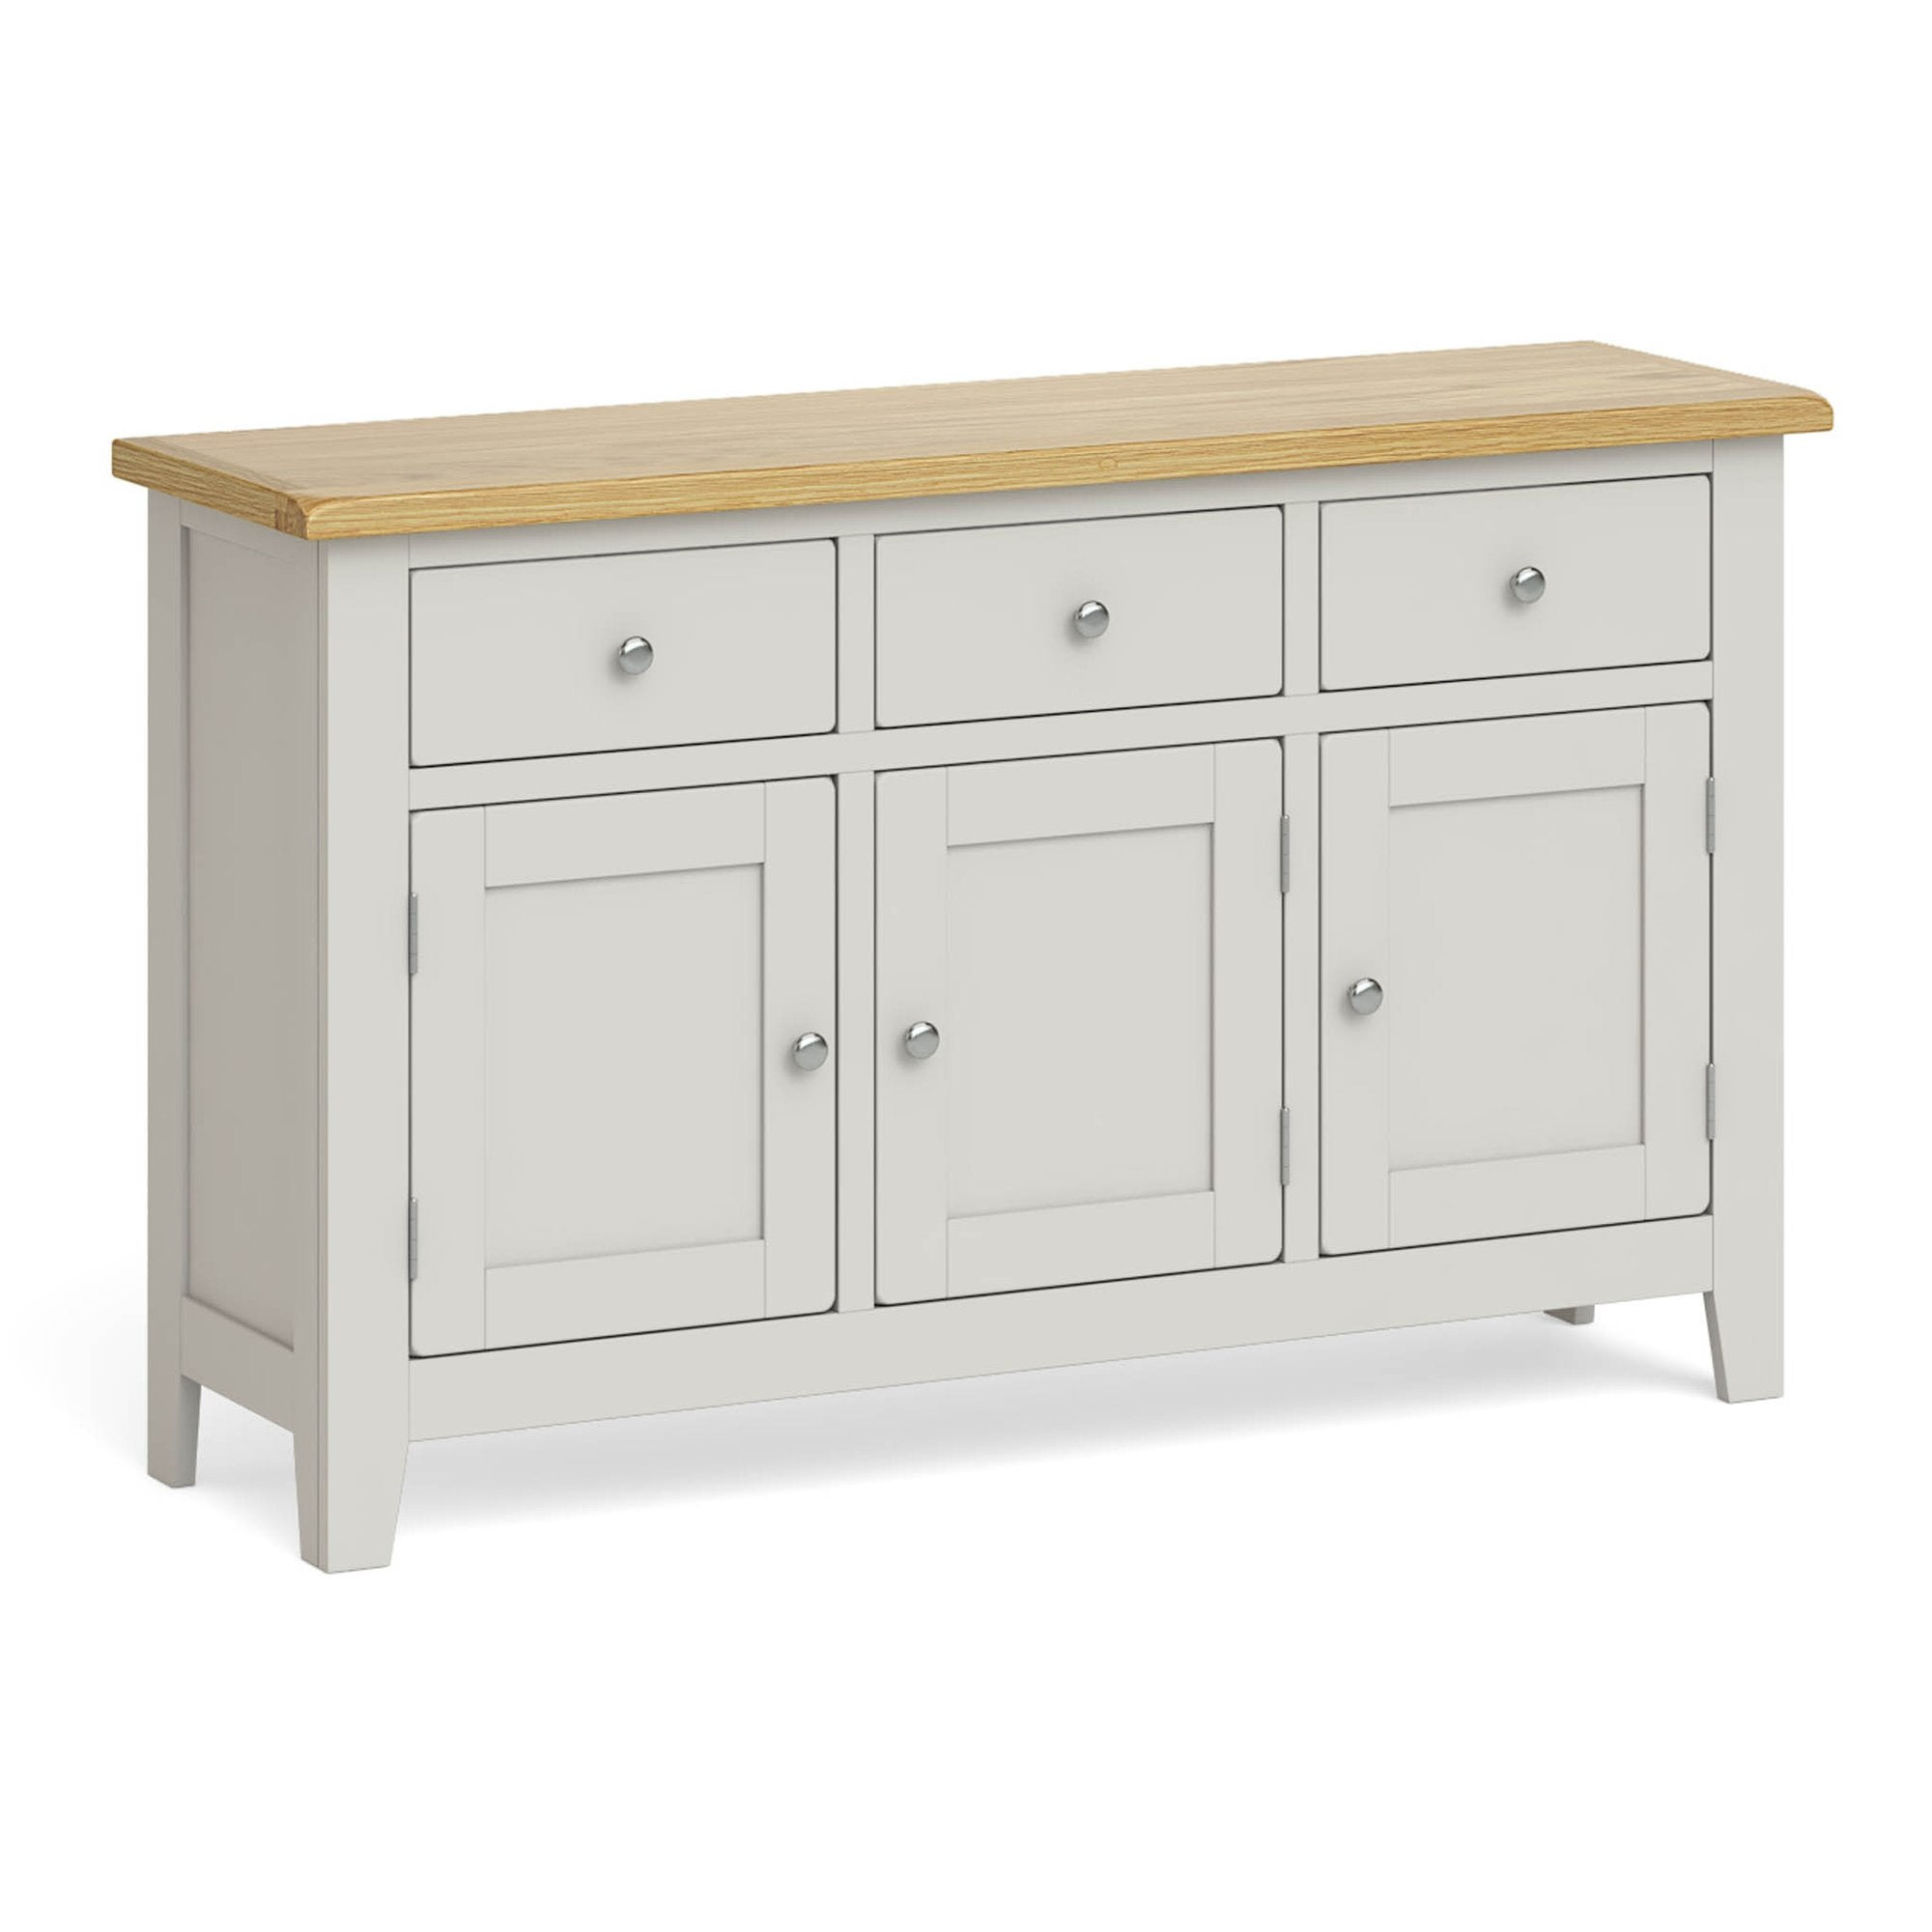 Lundy Grey Large Sideboard Unit by Roseland Furniture